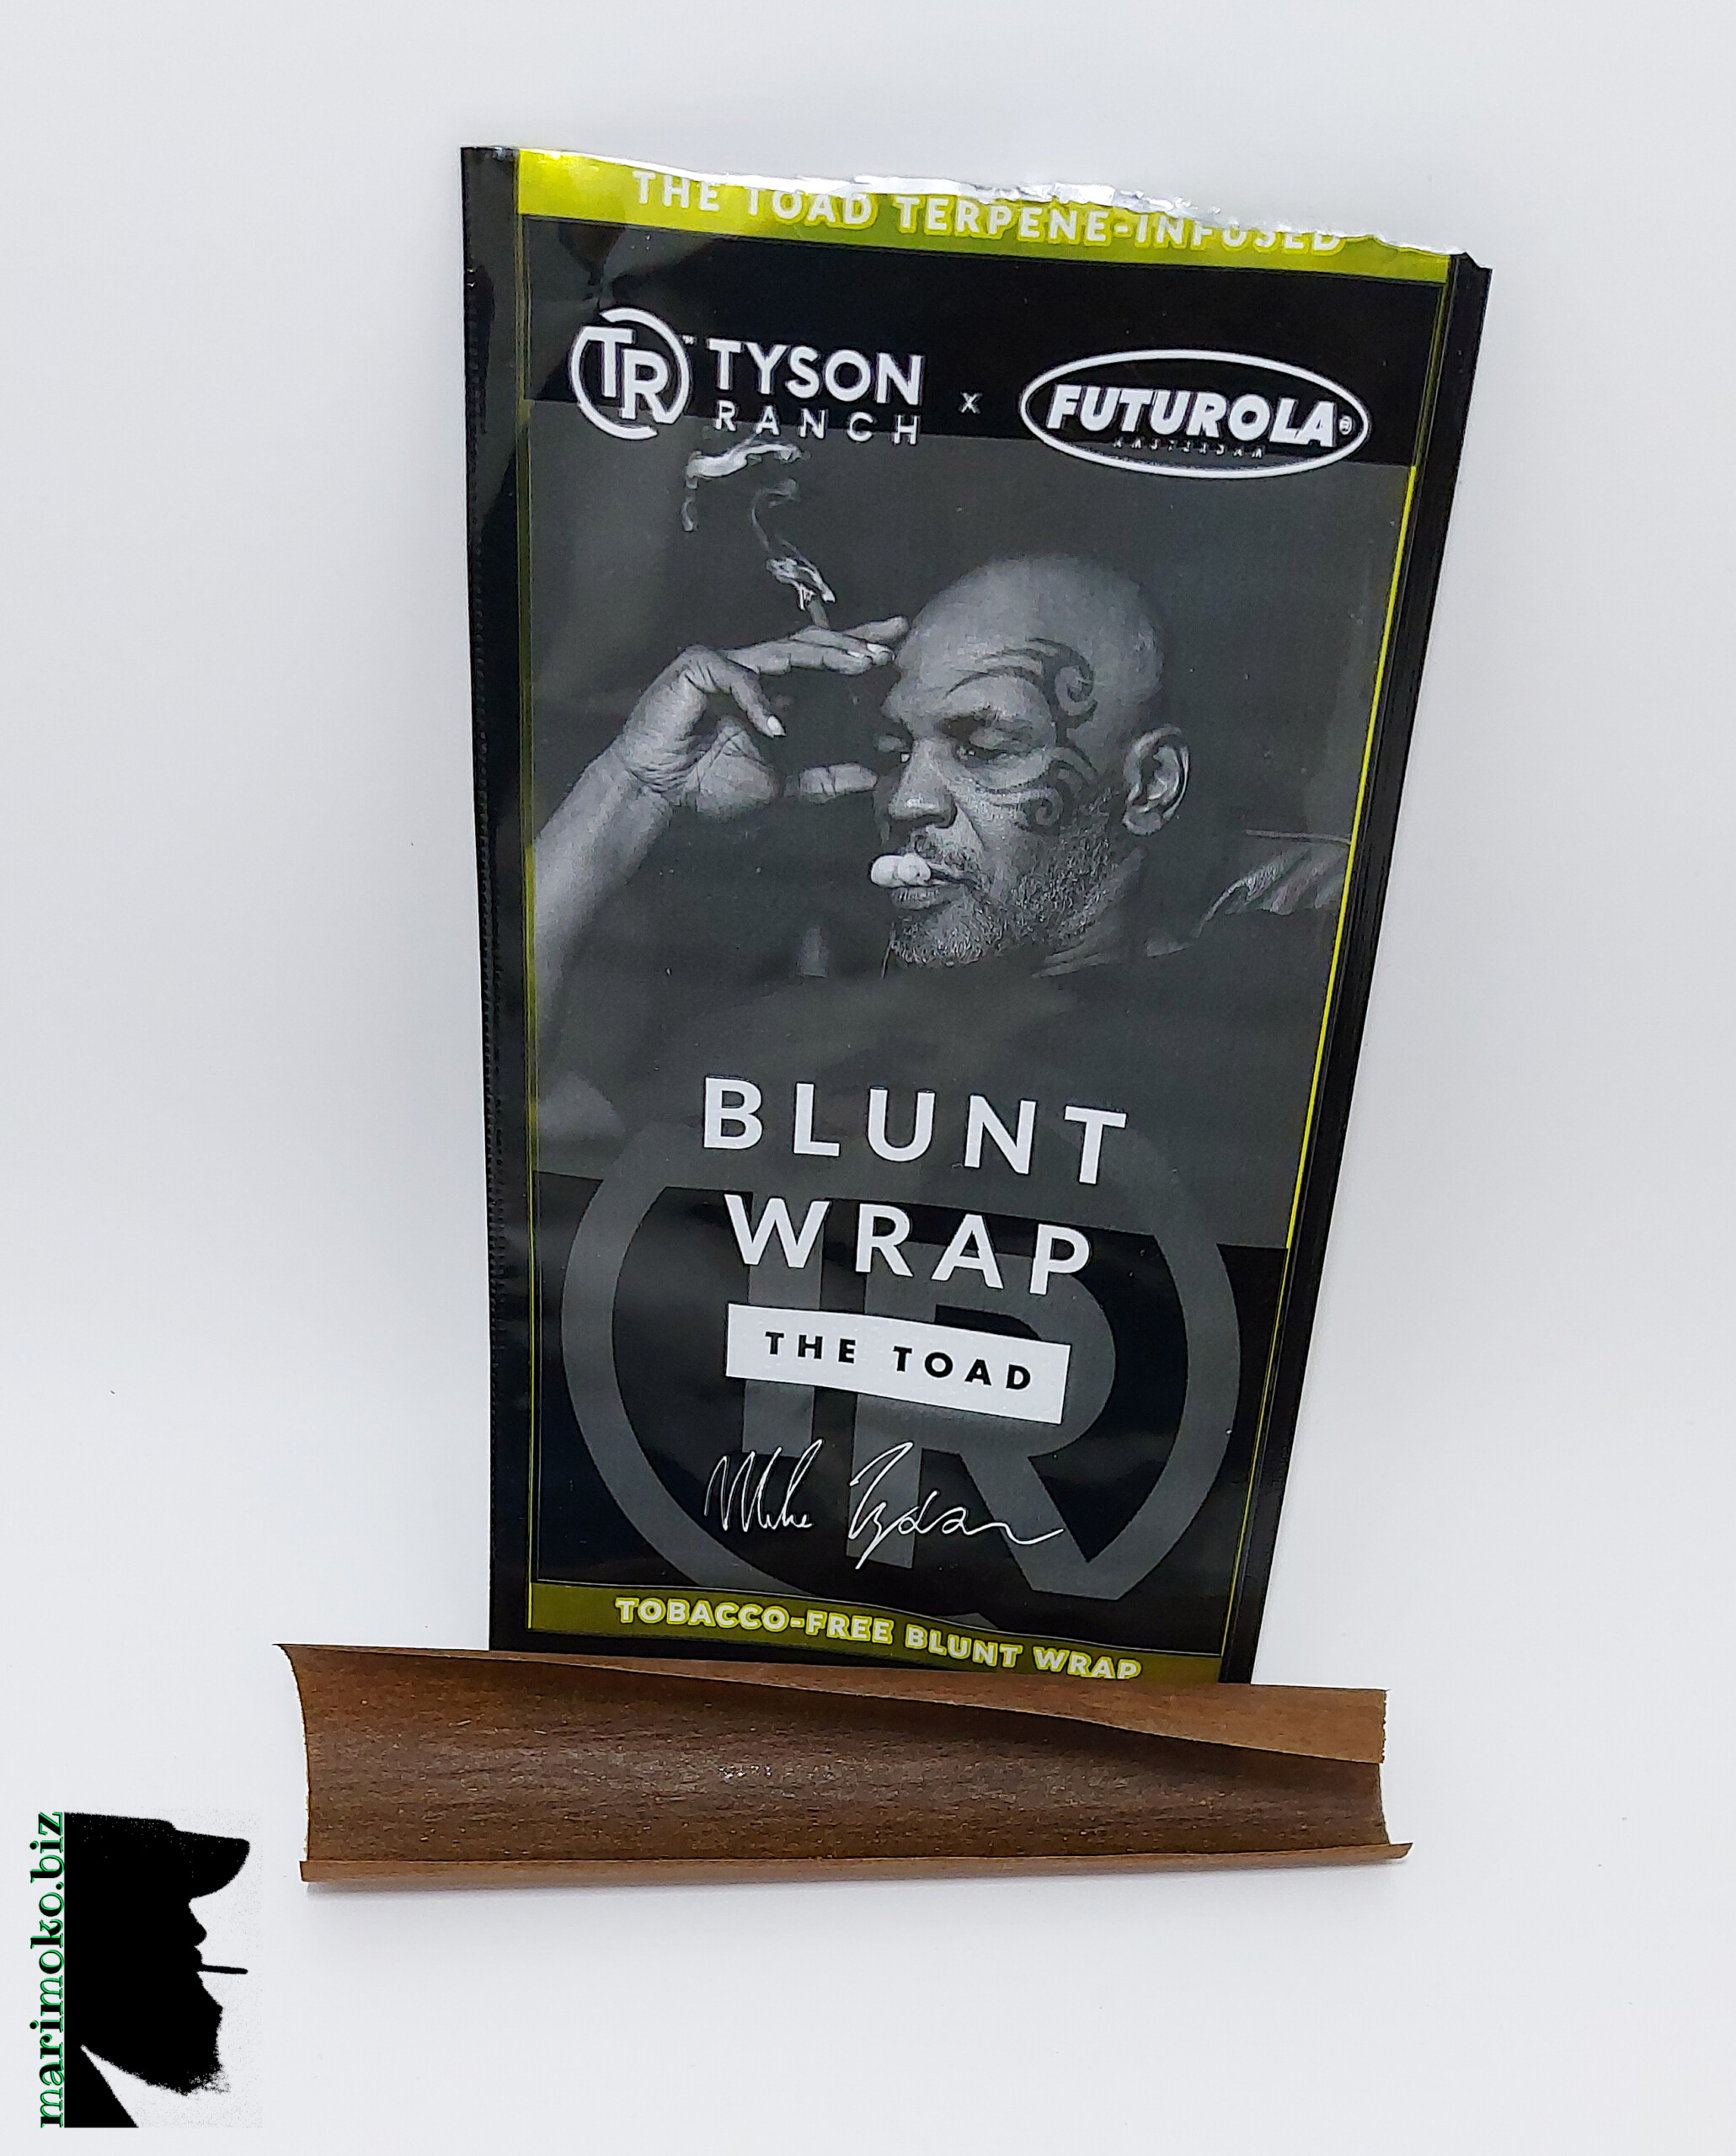 """Tyson Ranch x Futurola Tobacco-Free """"The Toad"""" Terpene Infused Blunt Wrap From Buy My Bud"""